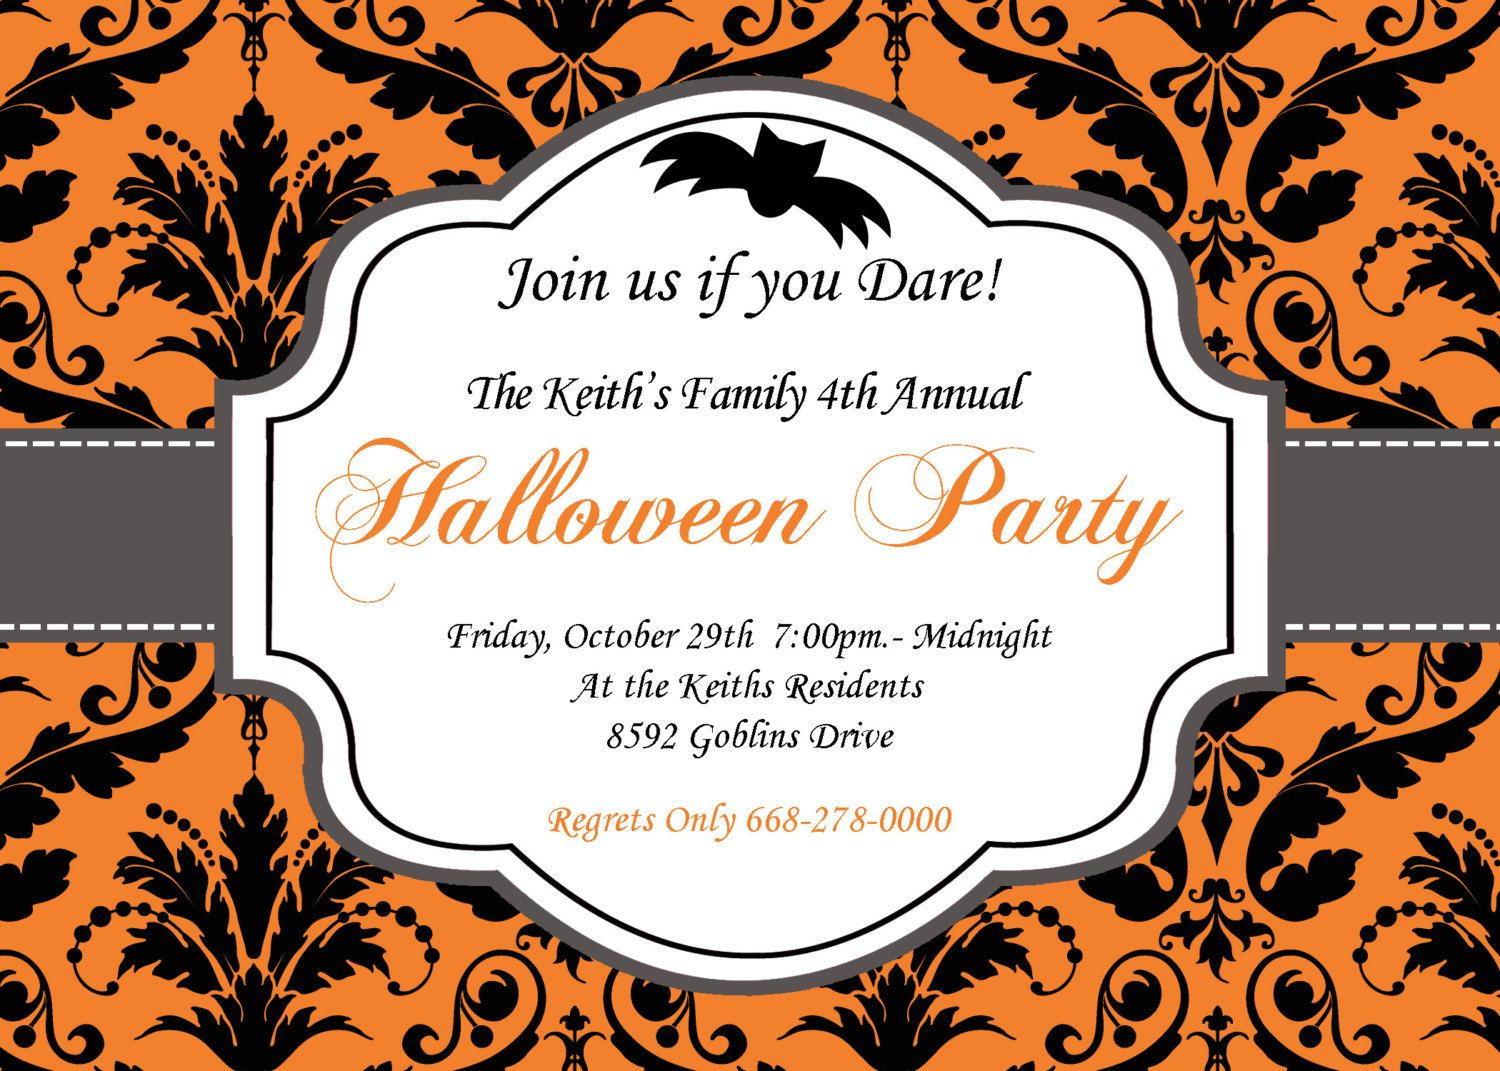 Halloween party invitation | HALLOWEEN IDEAS | Pinterest ...